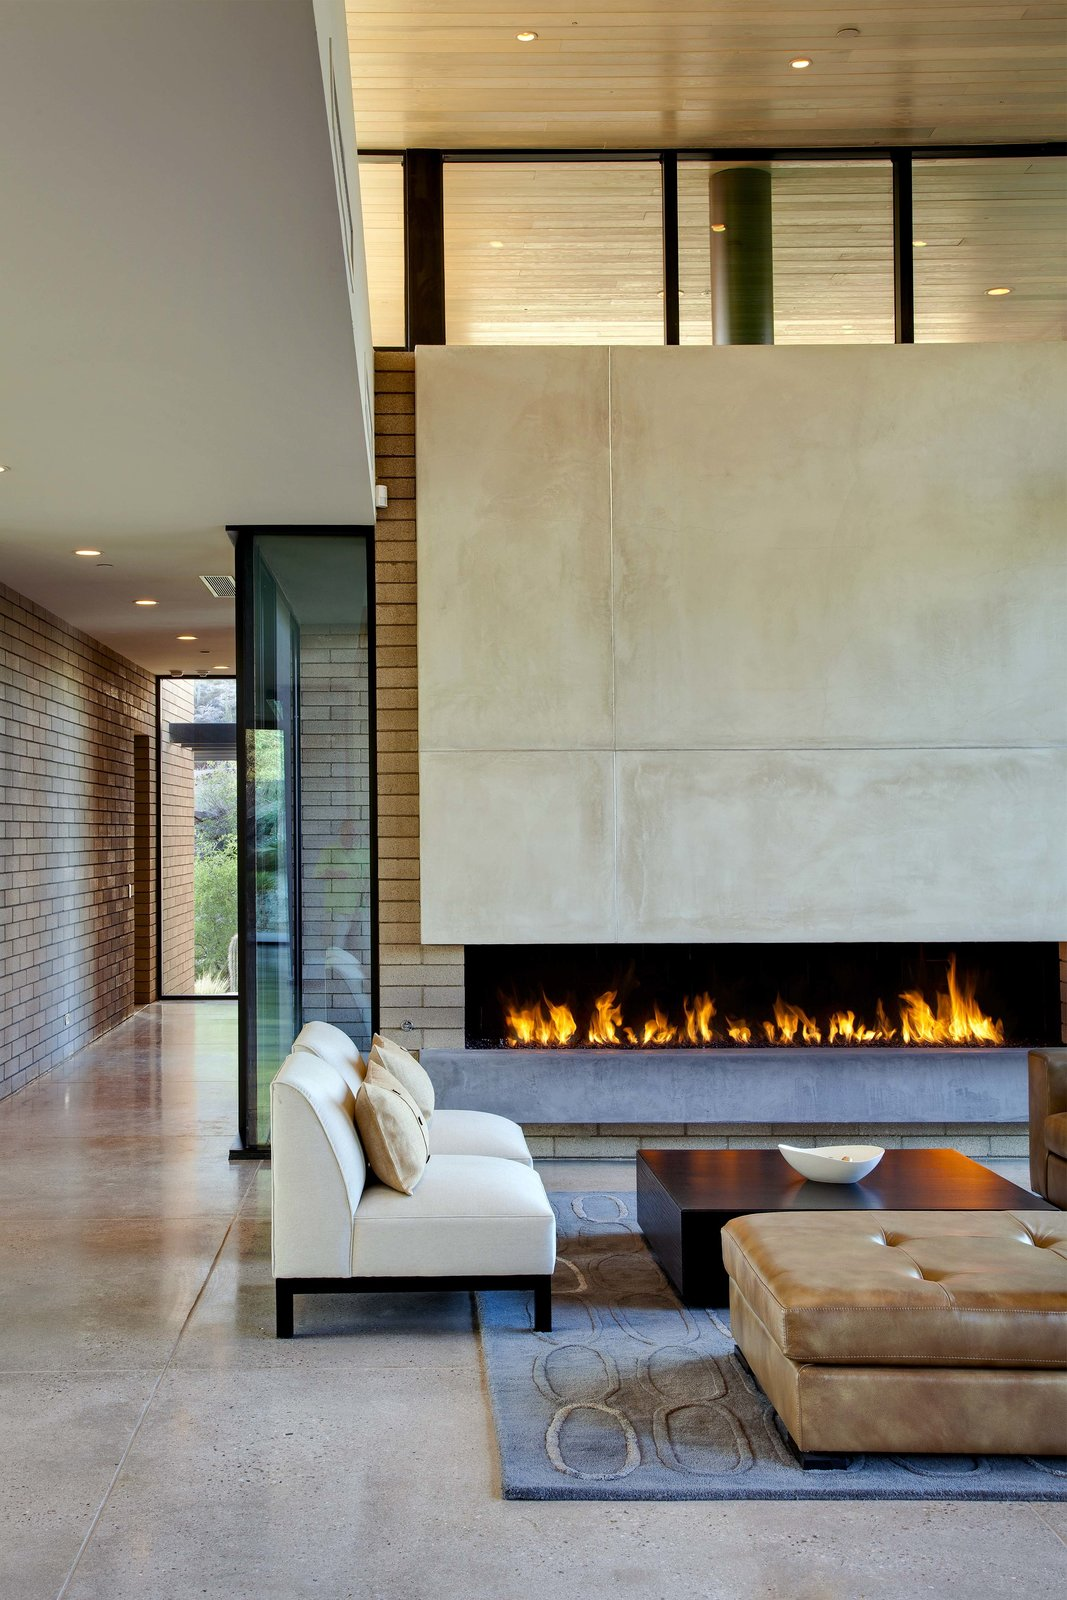 Living Room, Chair, Sofa, Coffee Tables, Ribbon Fireplace, Concrete Floor, and Gas Burning Fireplace  Desert Mountain Home by Kevin B Howard Architects